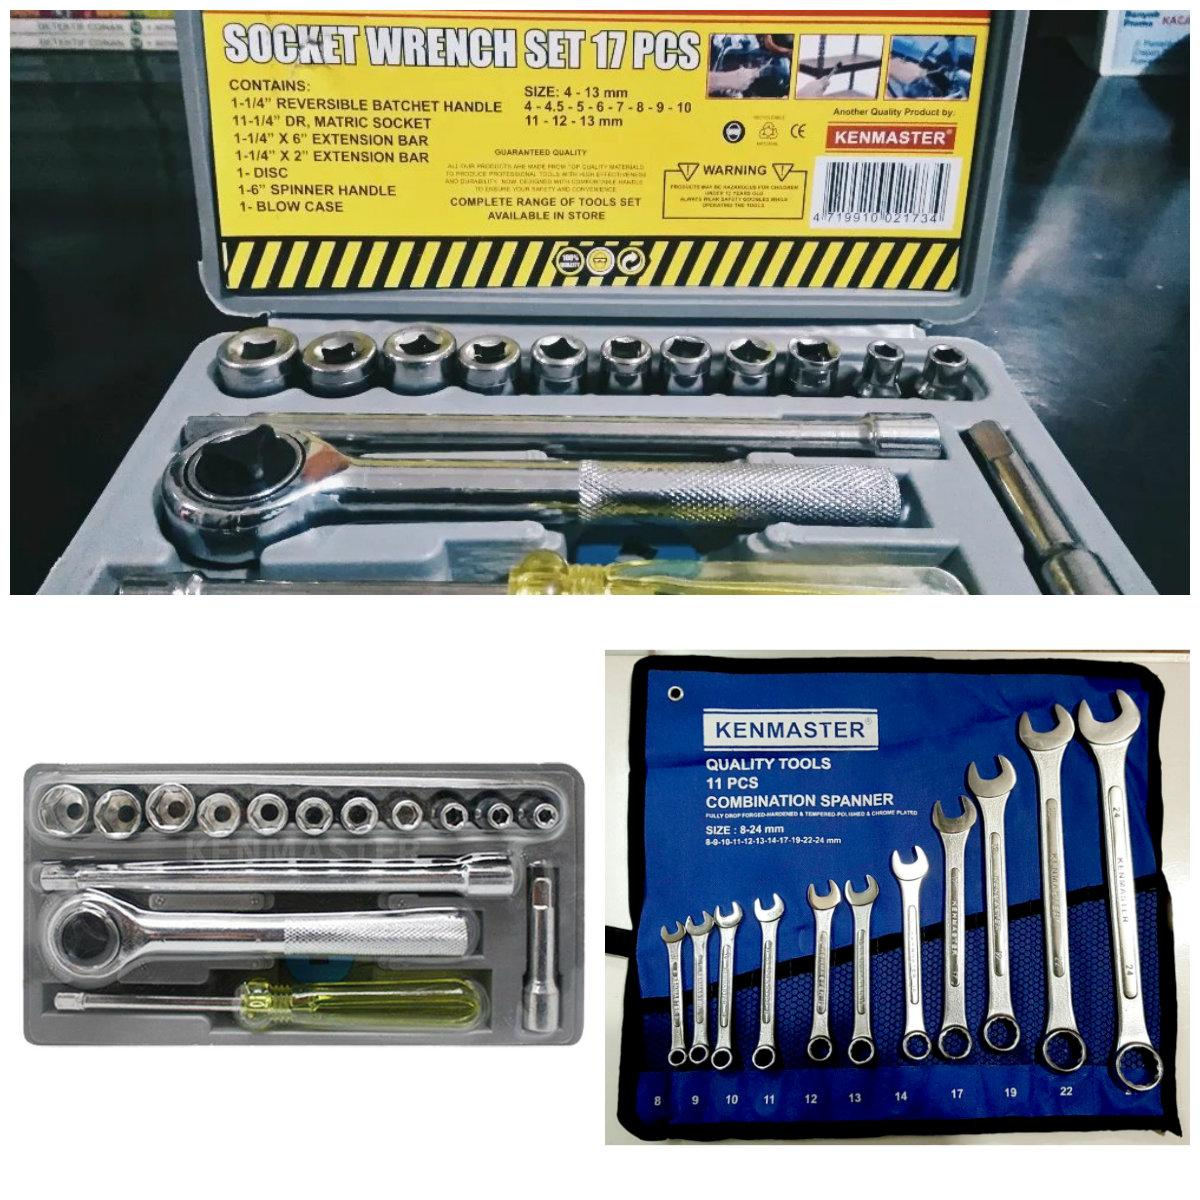 Kenmaster Kunci Sok 17 Pcs Sock Set Socket Wrench 1 Paket Ring Pas 11